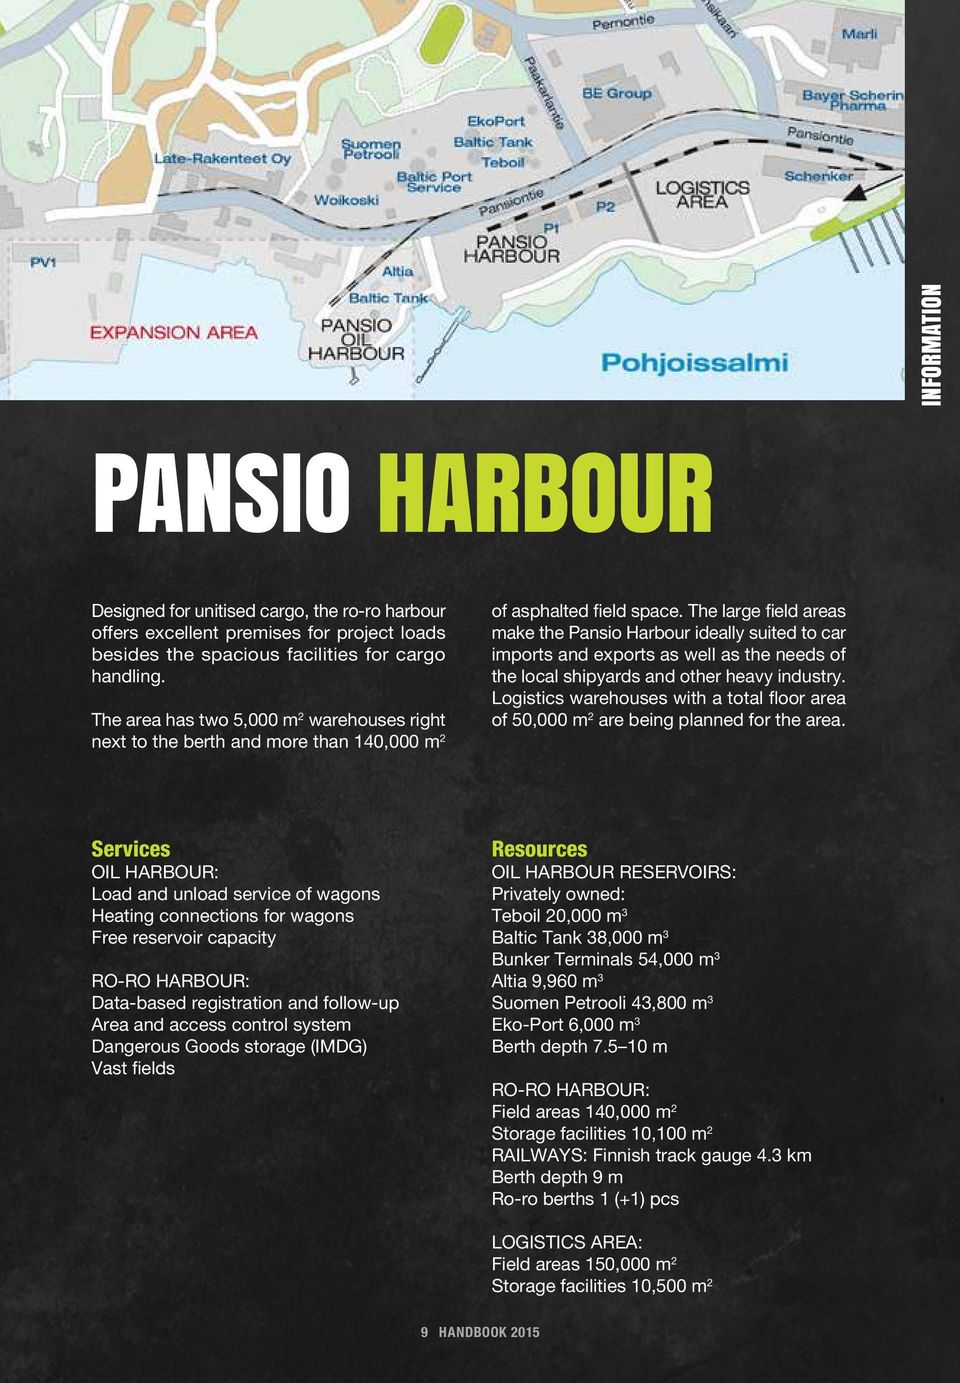 The large field areas make the Pansio Harbour ideally suited to car imports and exports as well as the needs of the local shipyards and other heavy industry.